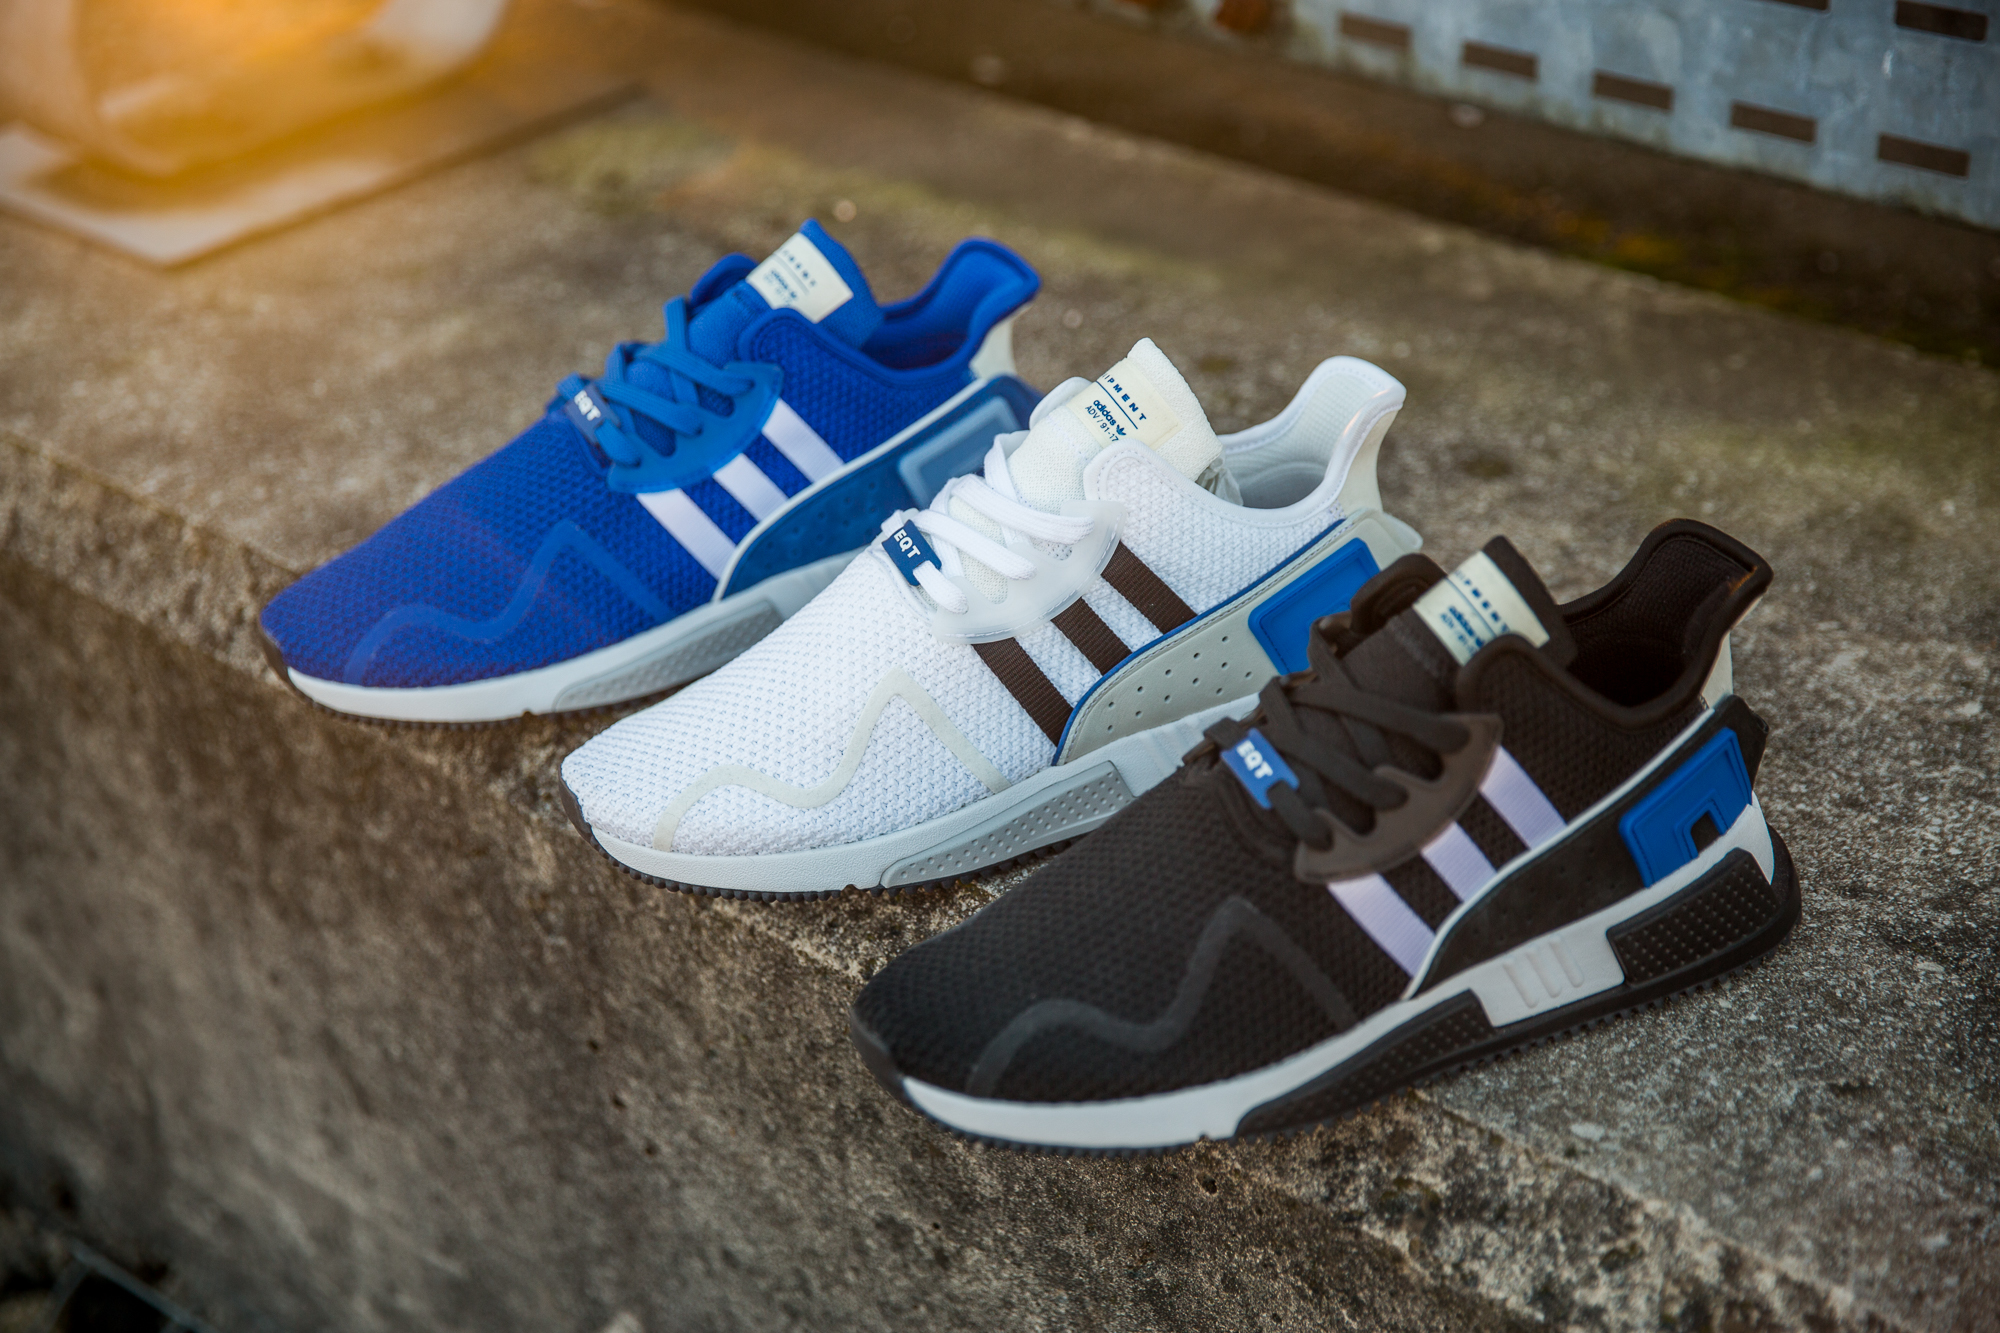 adidas Originals EQT Cushion ADV 'Blue' Pack